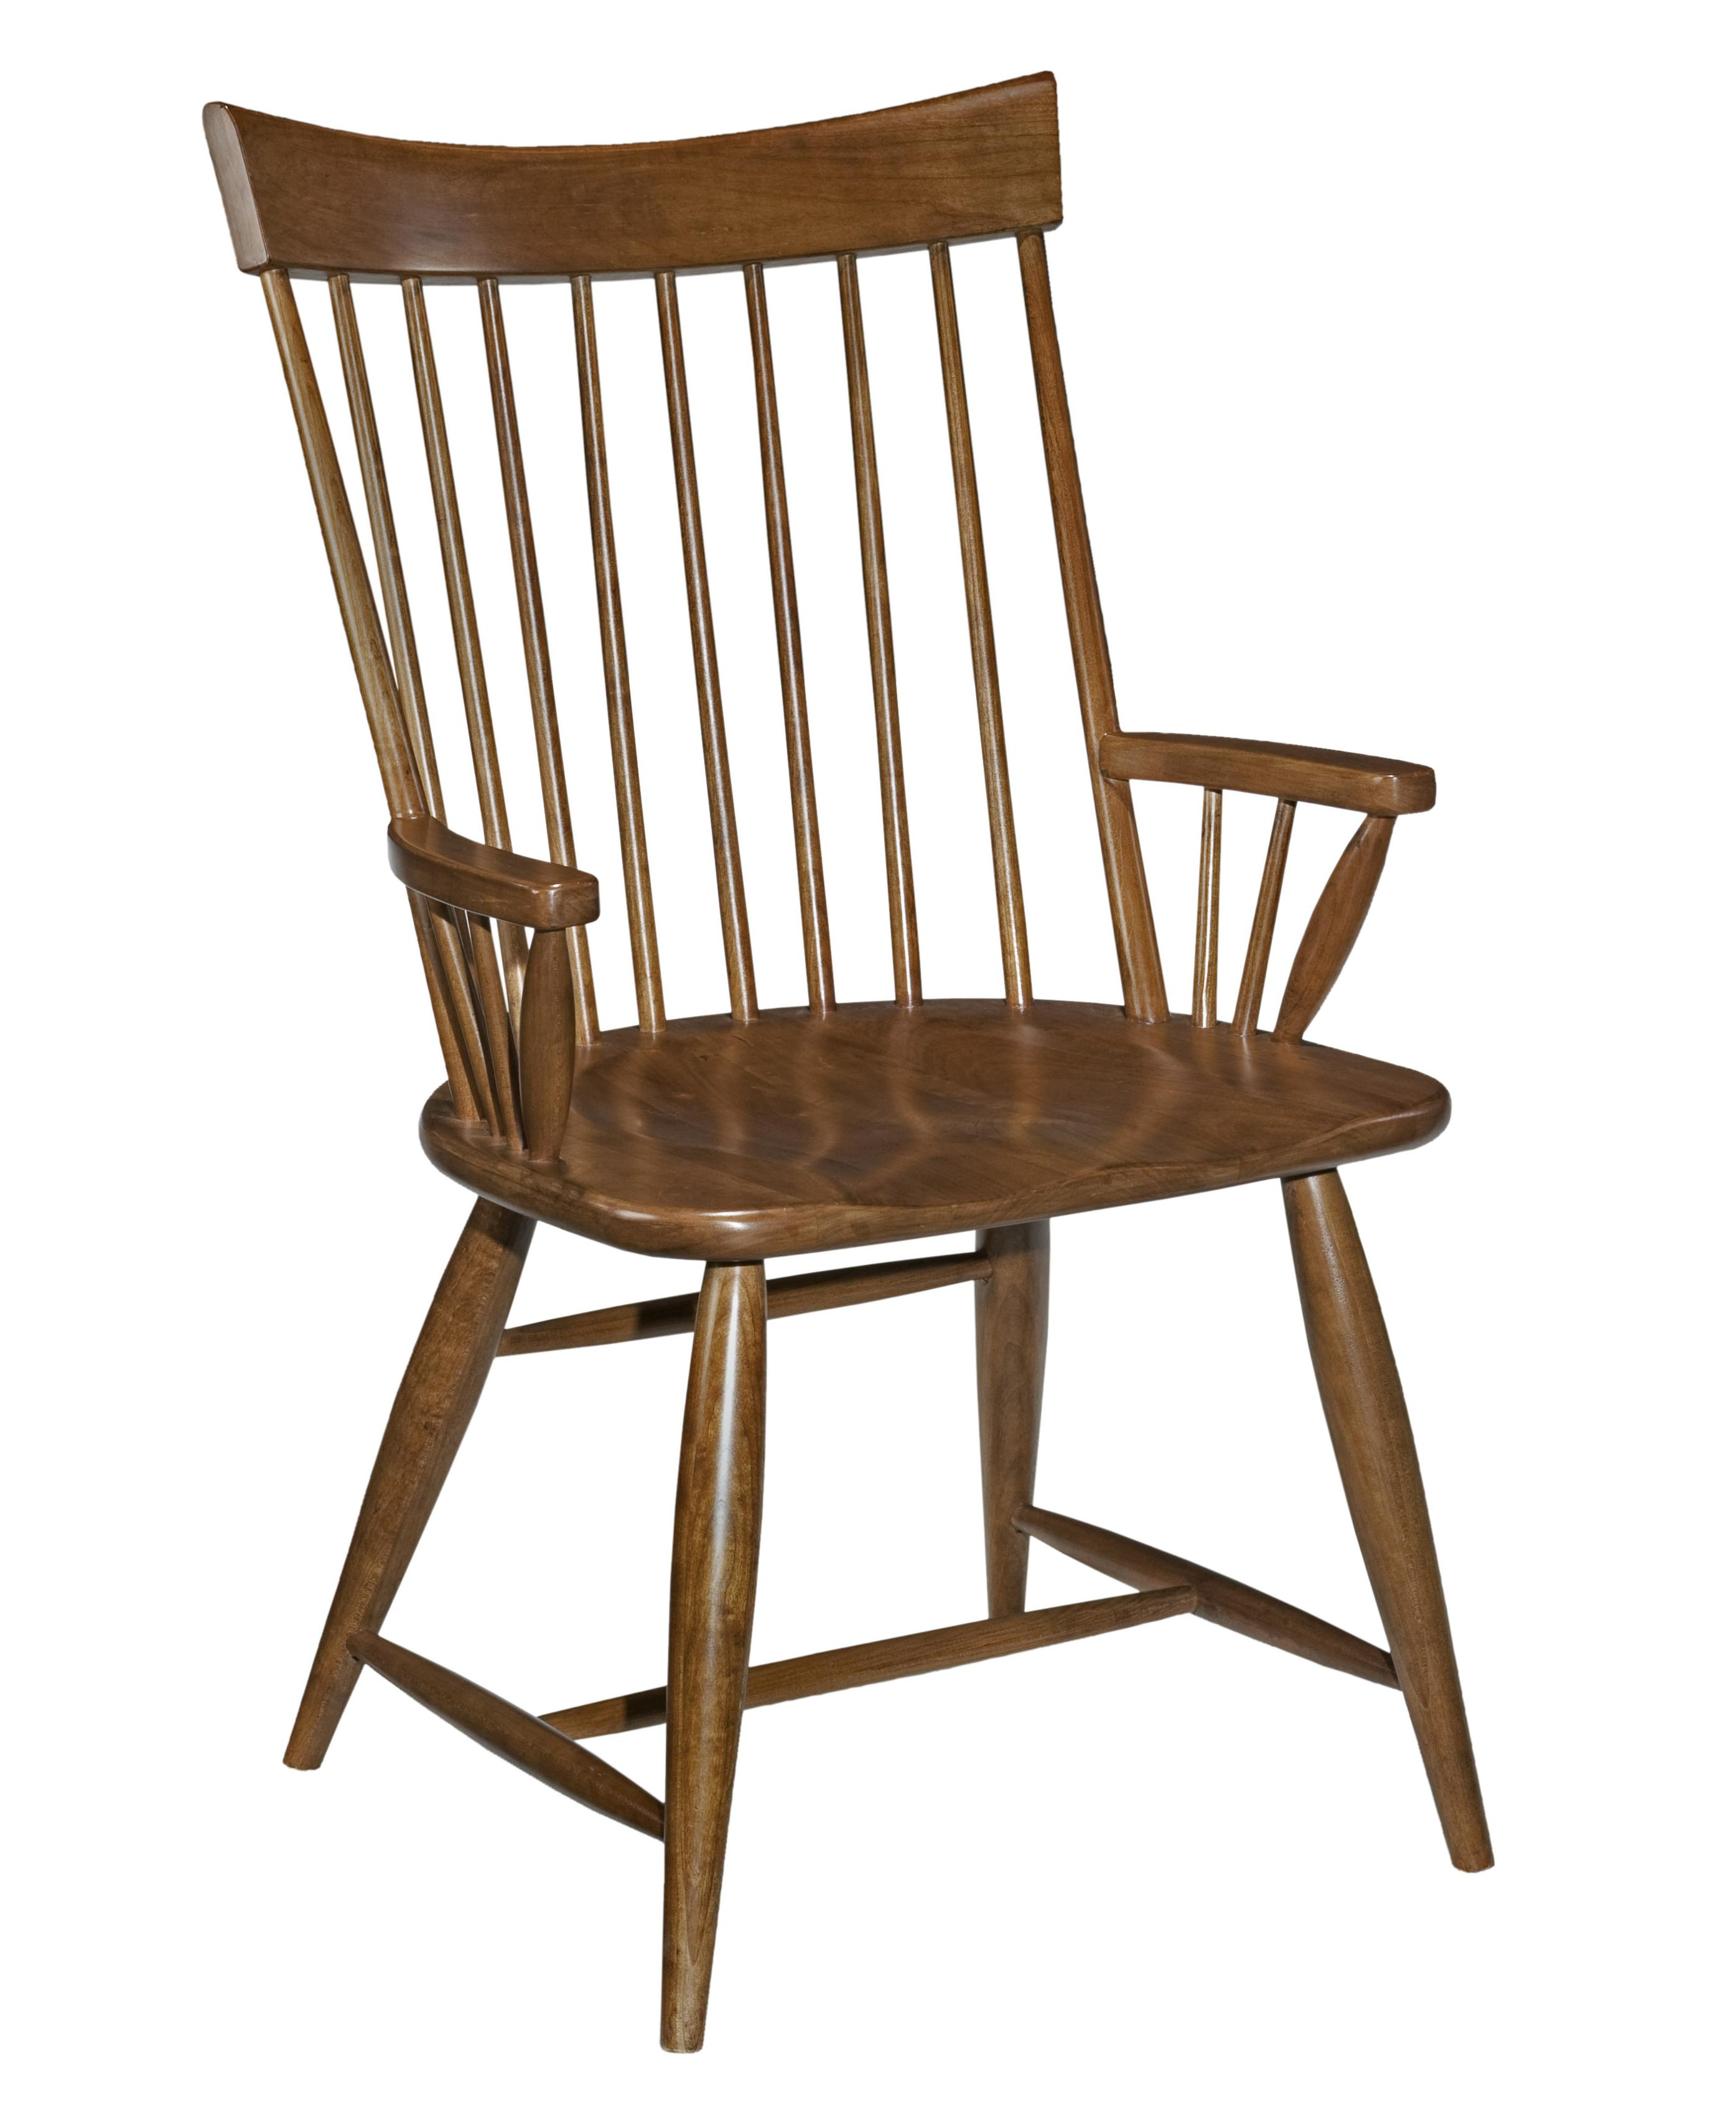 Cherry Park Windsor Arm Chair by Kincaid Furniture at Northeast Factory Direct